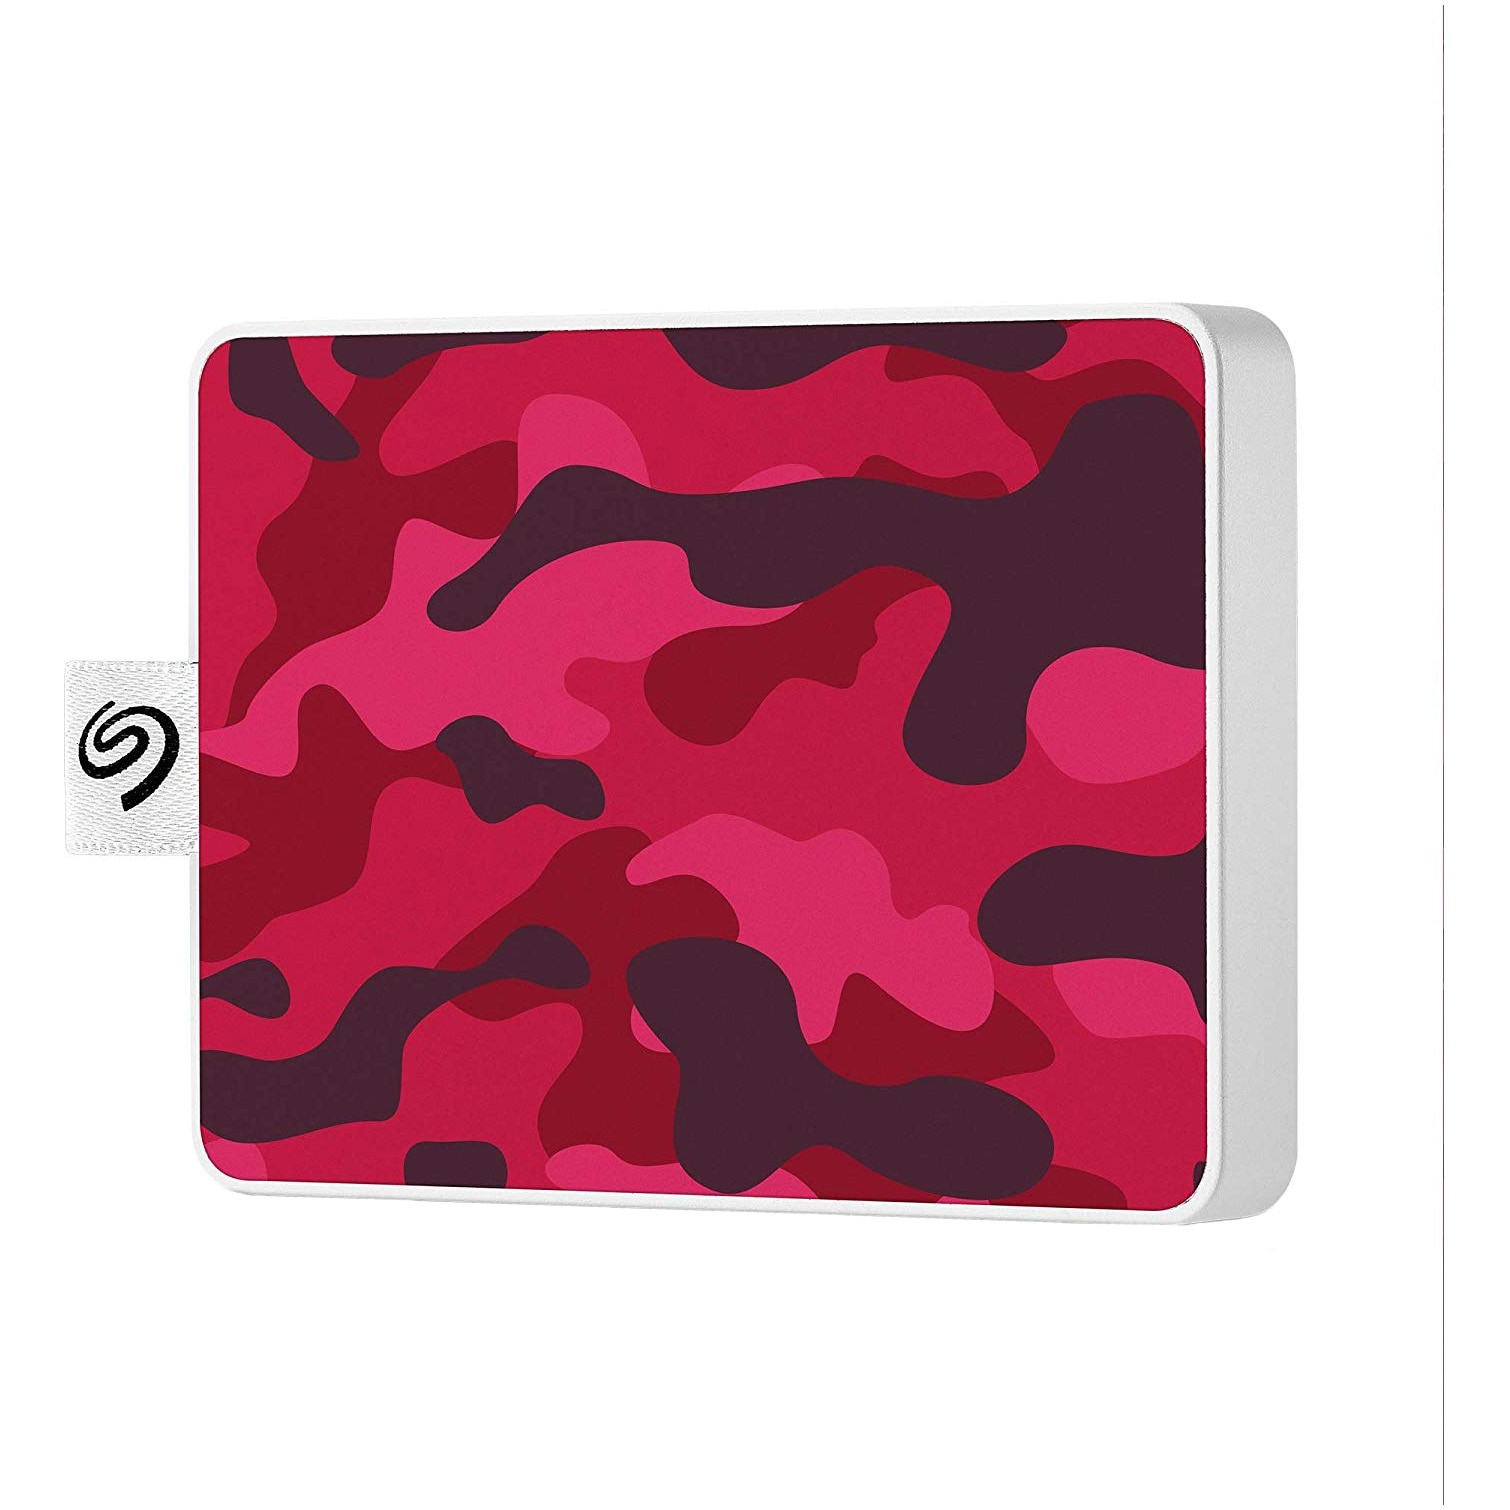 Fotografie SSD Extern Seagate One Touch 500GB, USB 3.0, Special Edition Camo Rosu